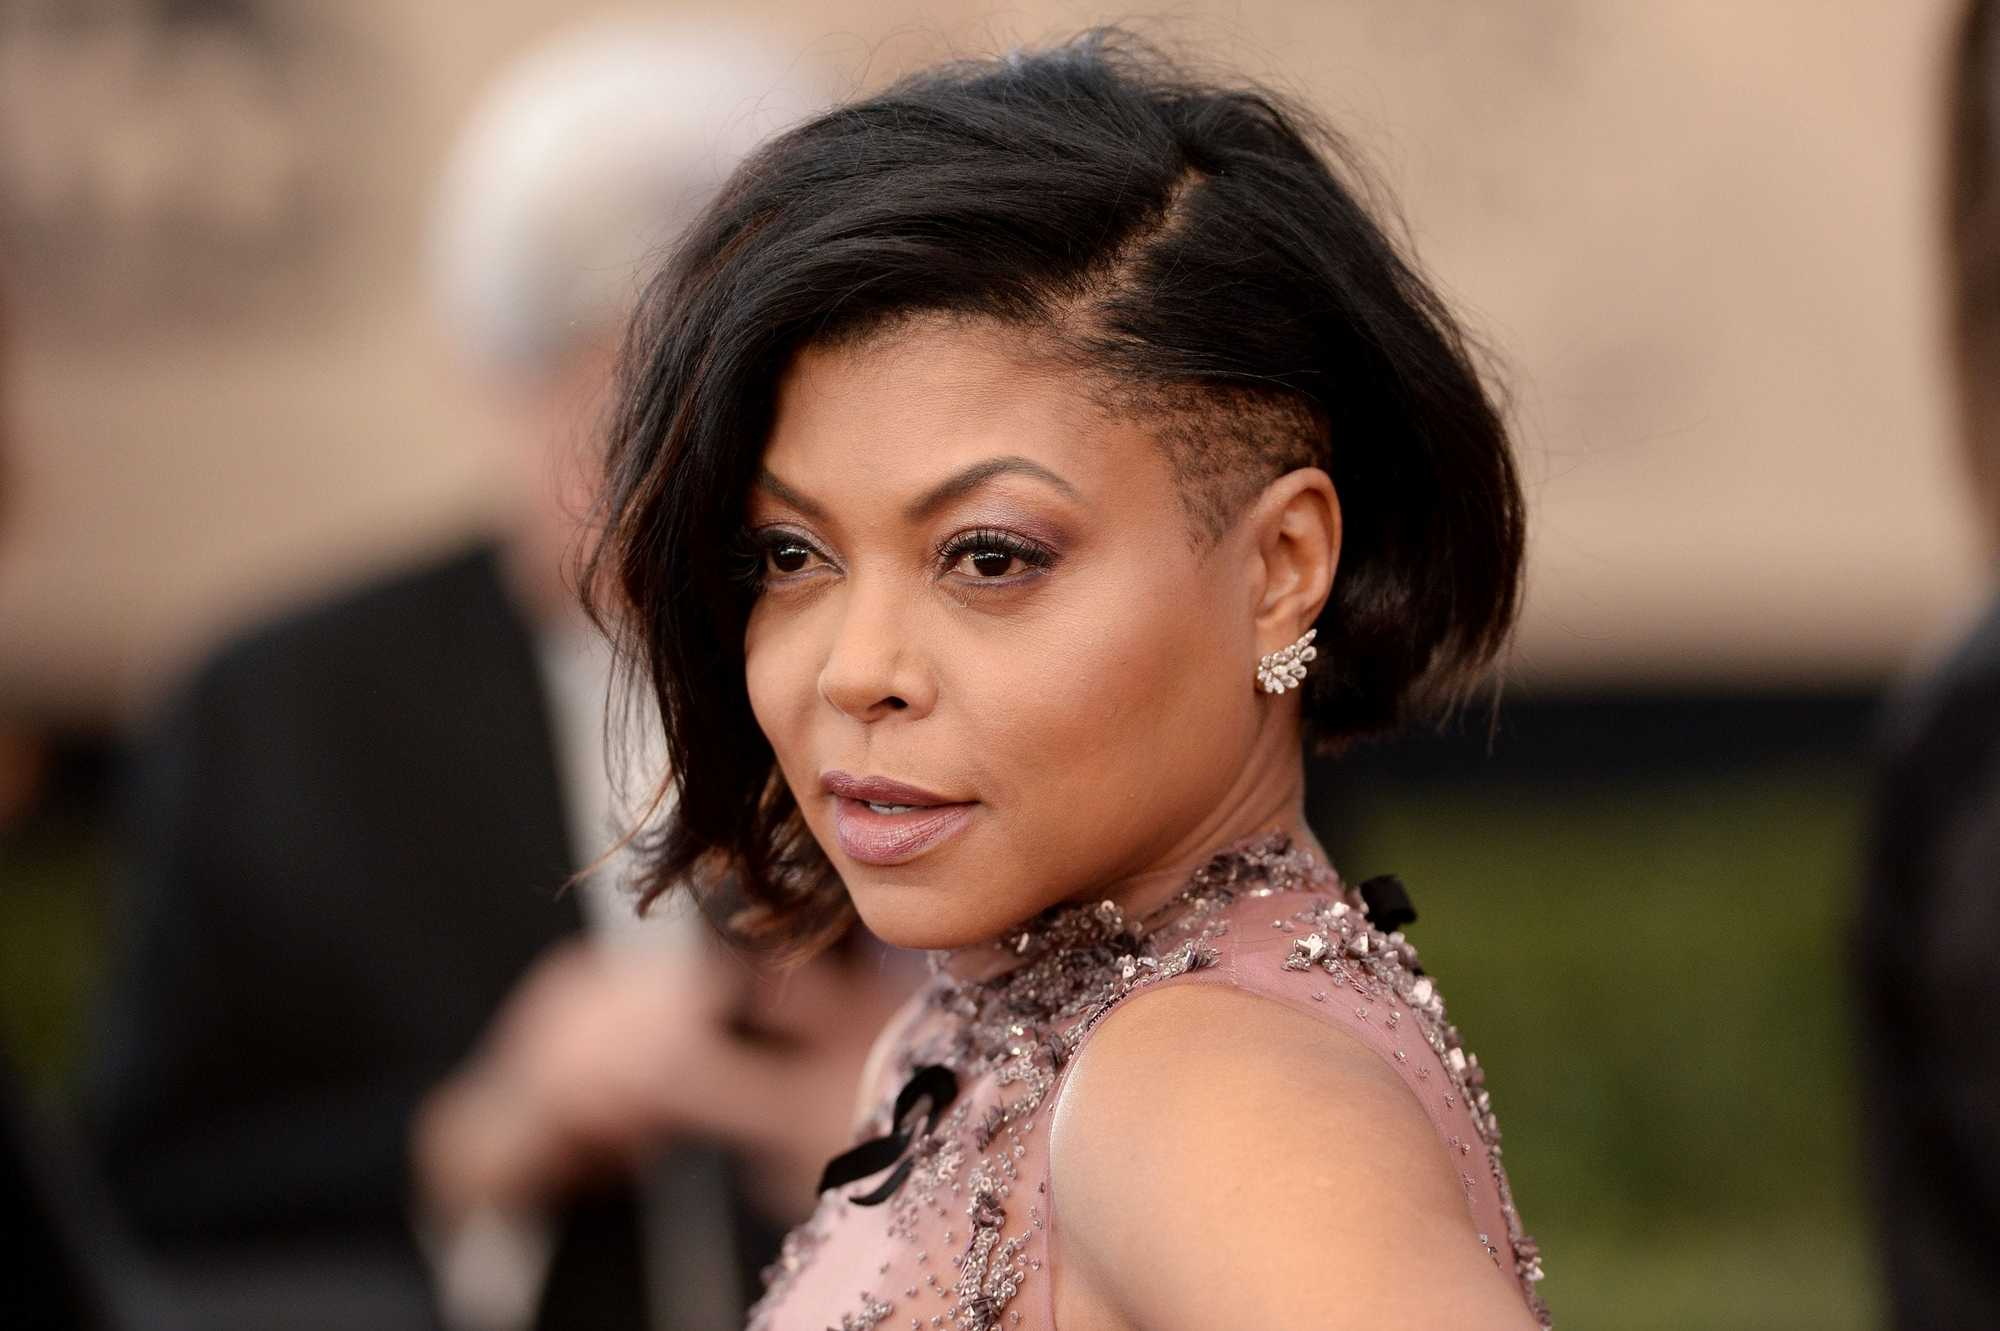 Taraji P Henson Hair Styles: Fashionable Hairstyles That Mature Women Can Rock (yet No